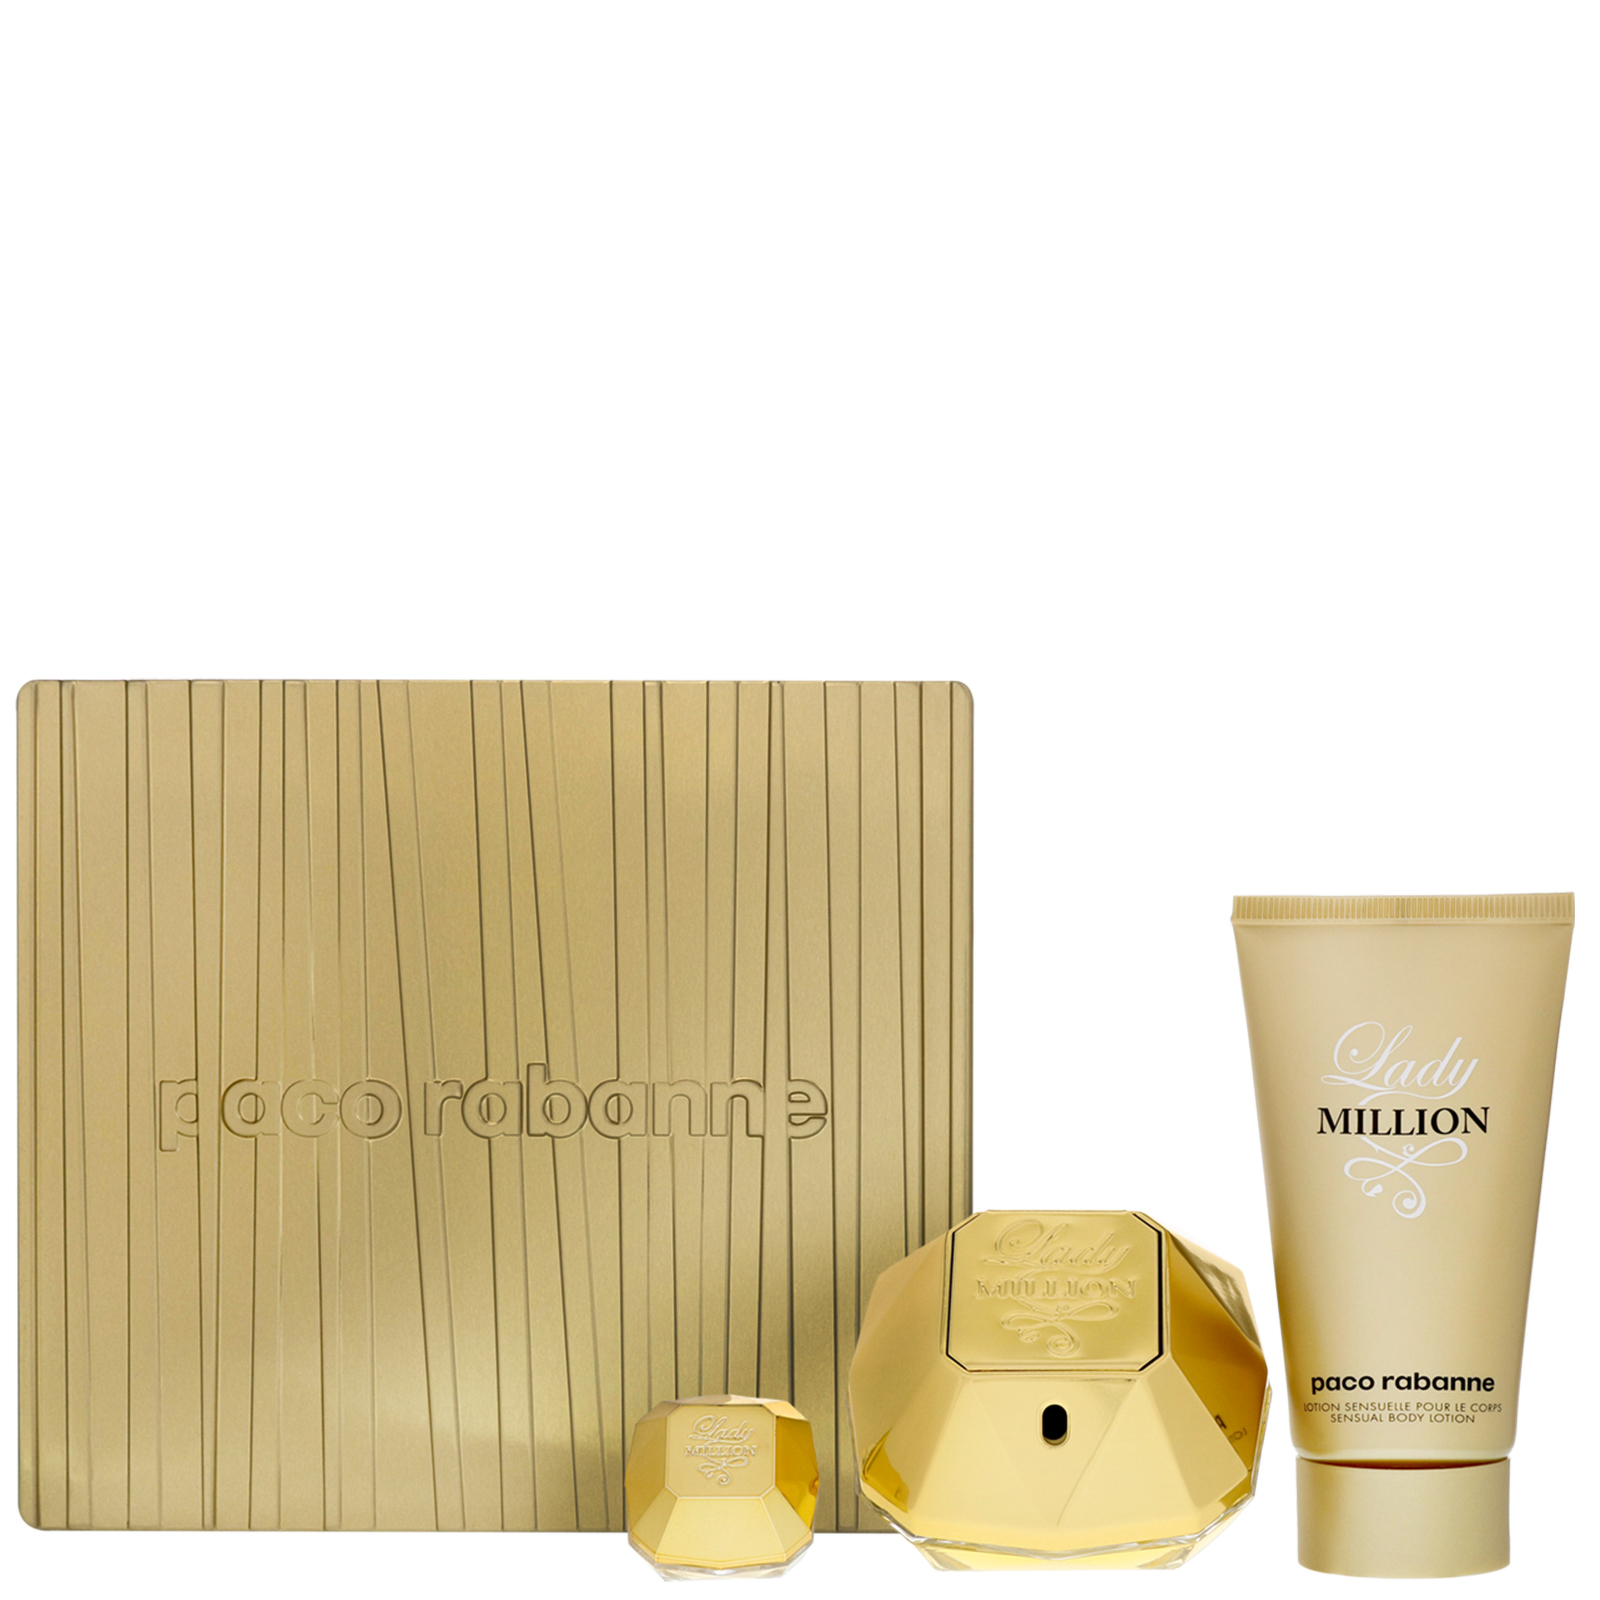 Paco Rabanne Lady Million Eau de Parfum Spray 50ml Gift Set